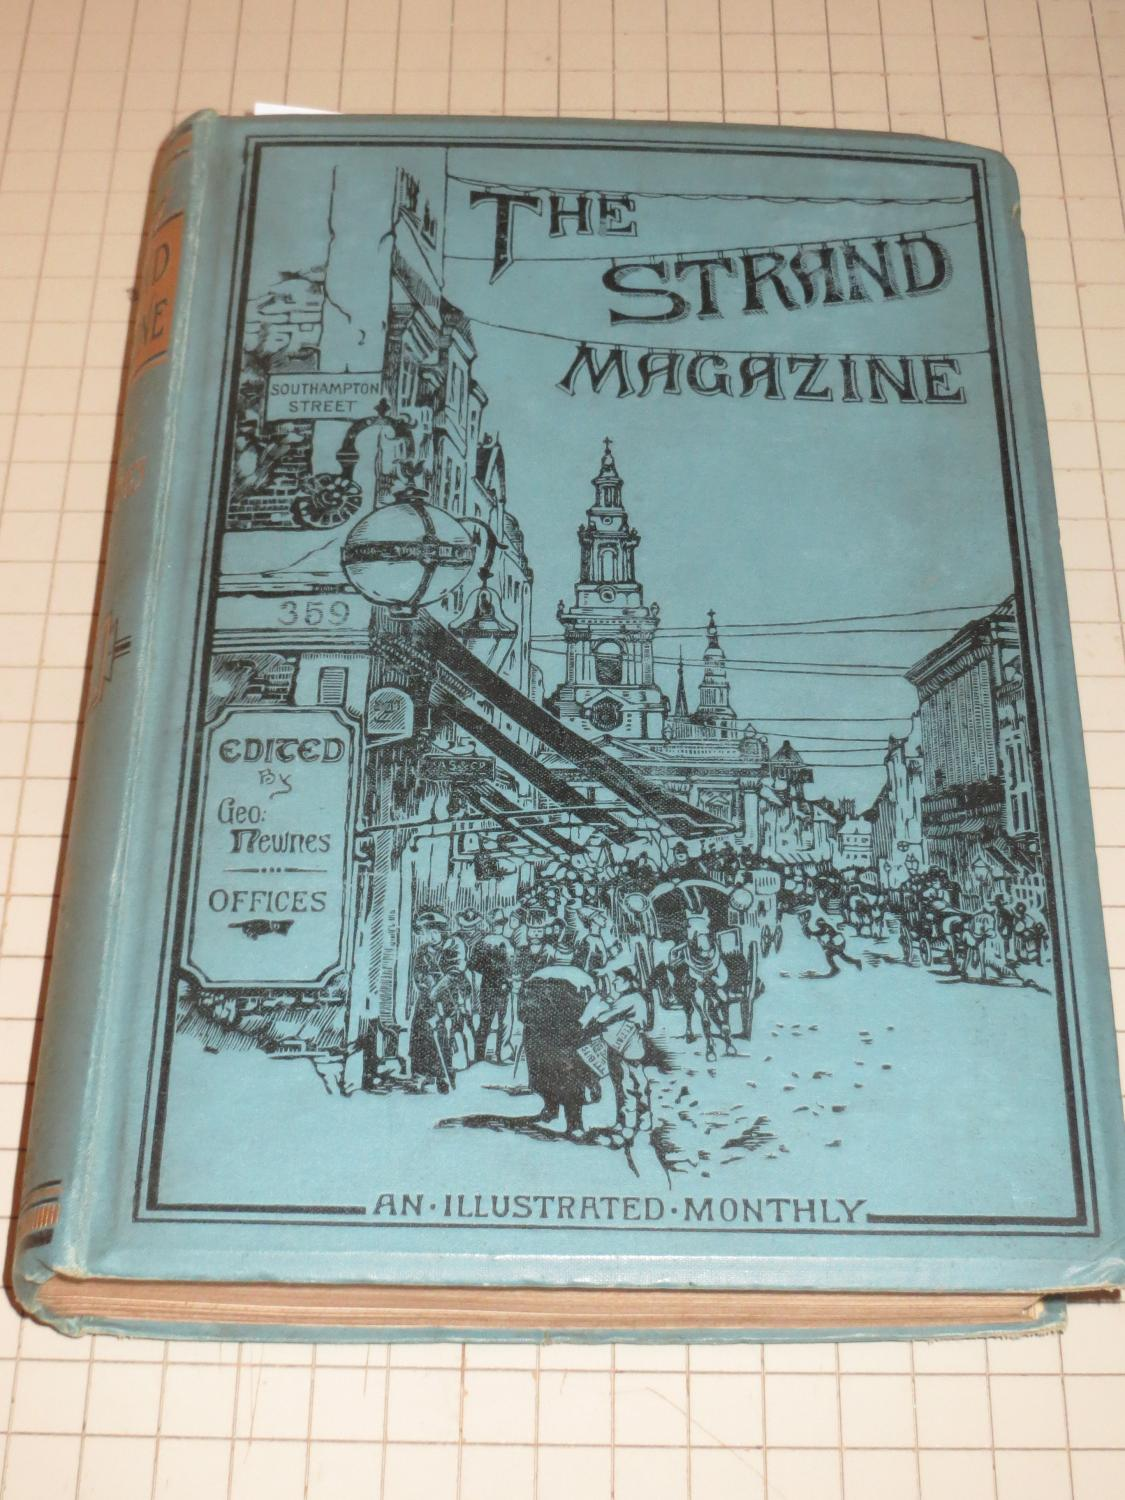 1892 Stramd Magazine Bound Vol. - Sherlock Holmes Stories - Adventure of the Blue Carbuncle - ...